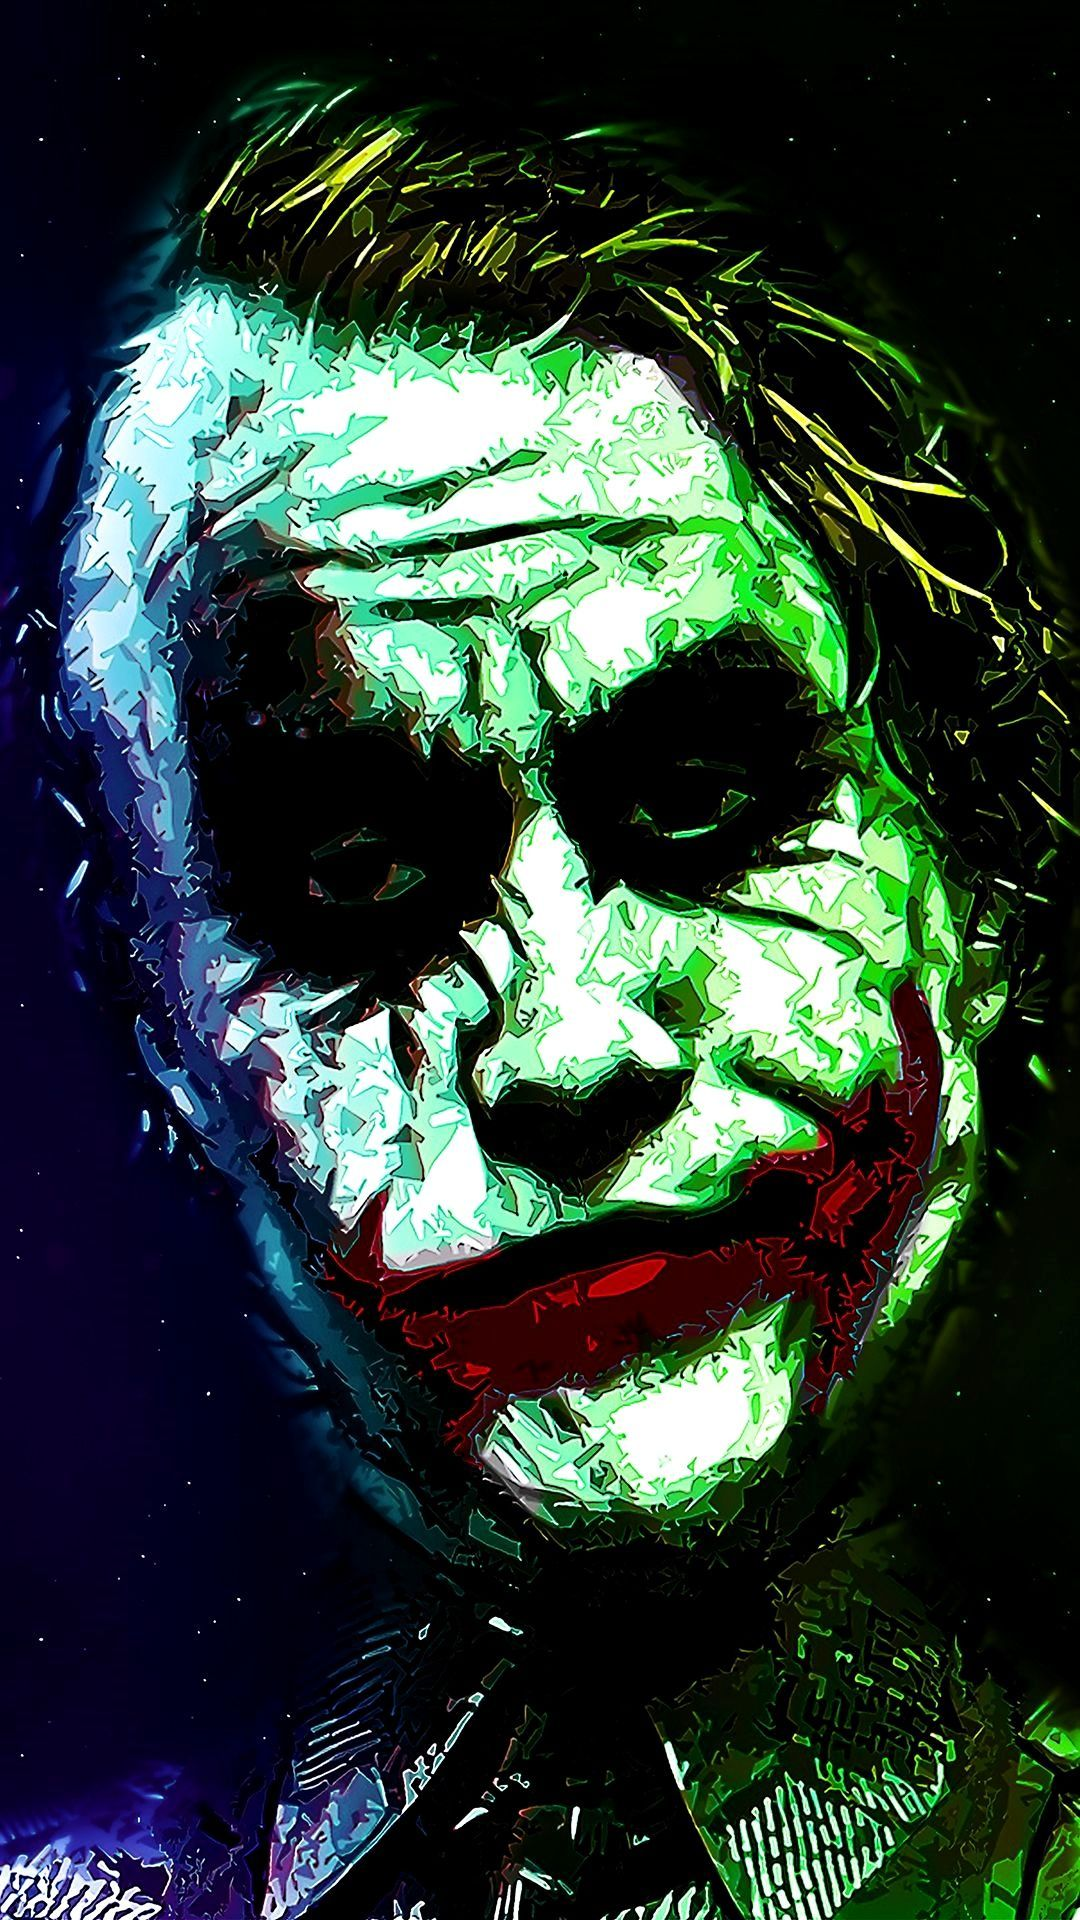 Joker Wallpaper 4k For Mobile